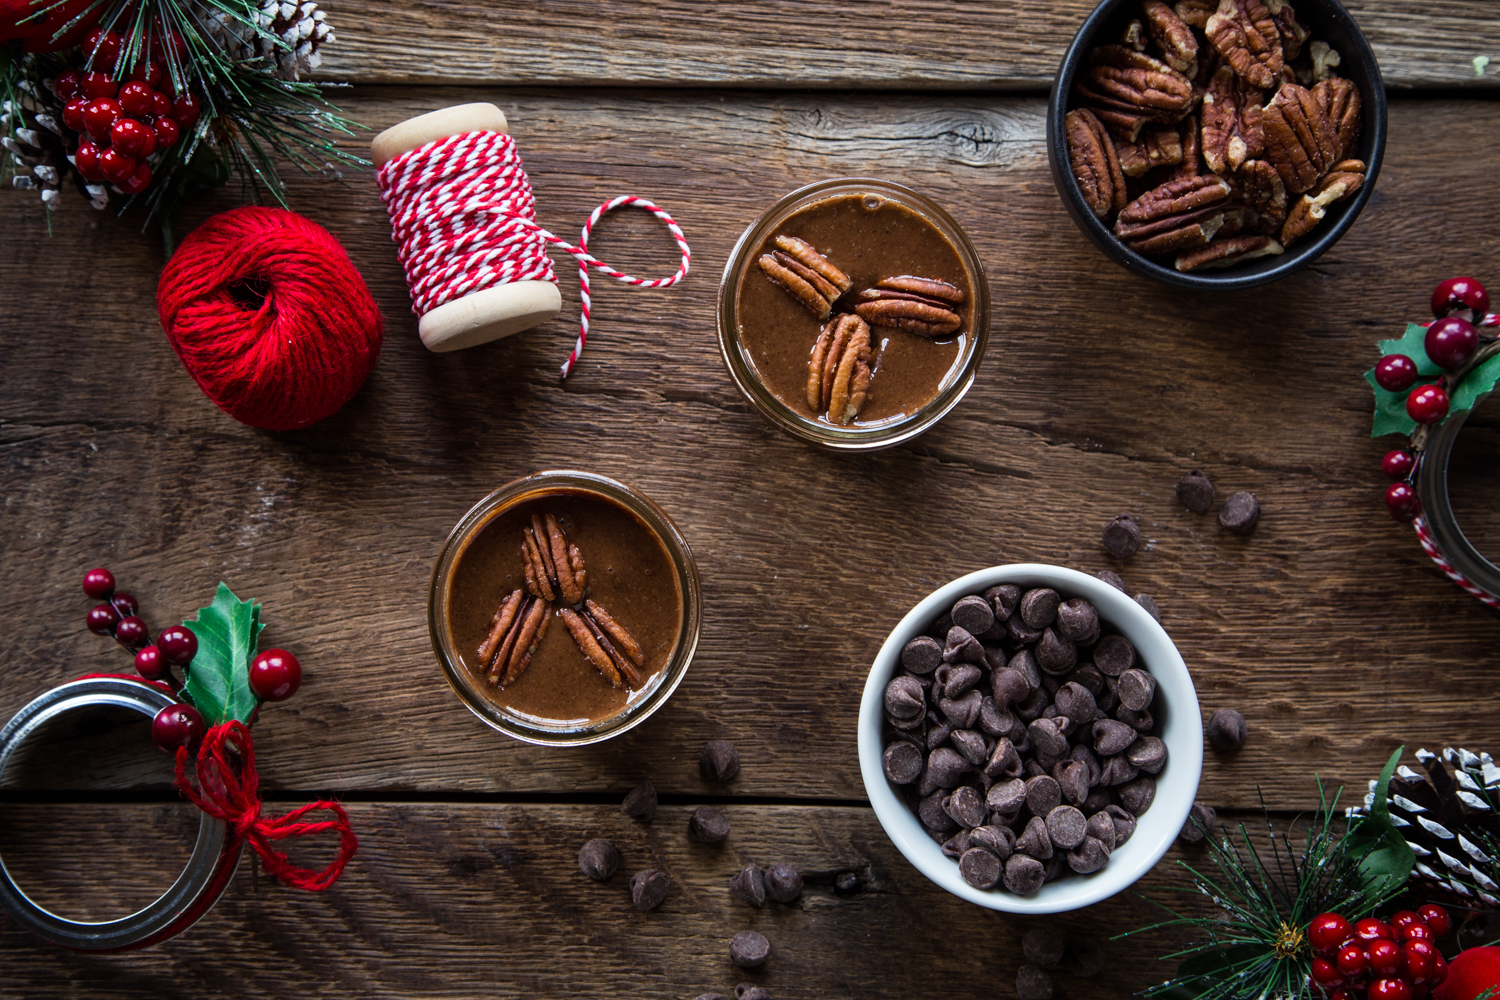 Pecan Pie Butter makes great last minute hostess gifts!